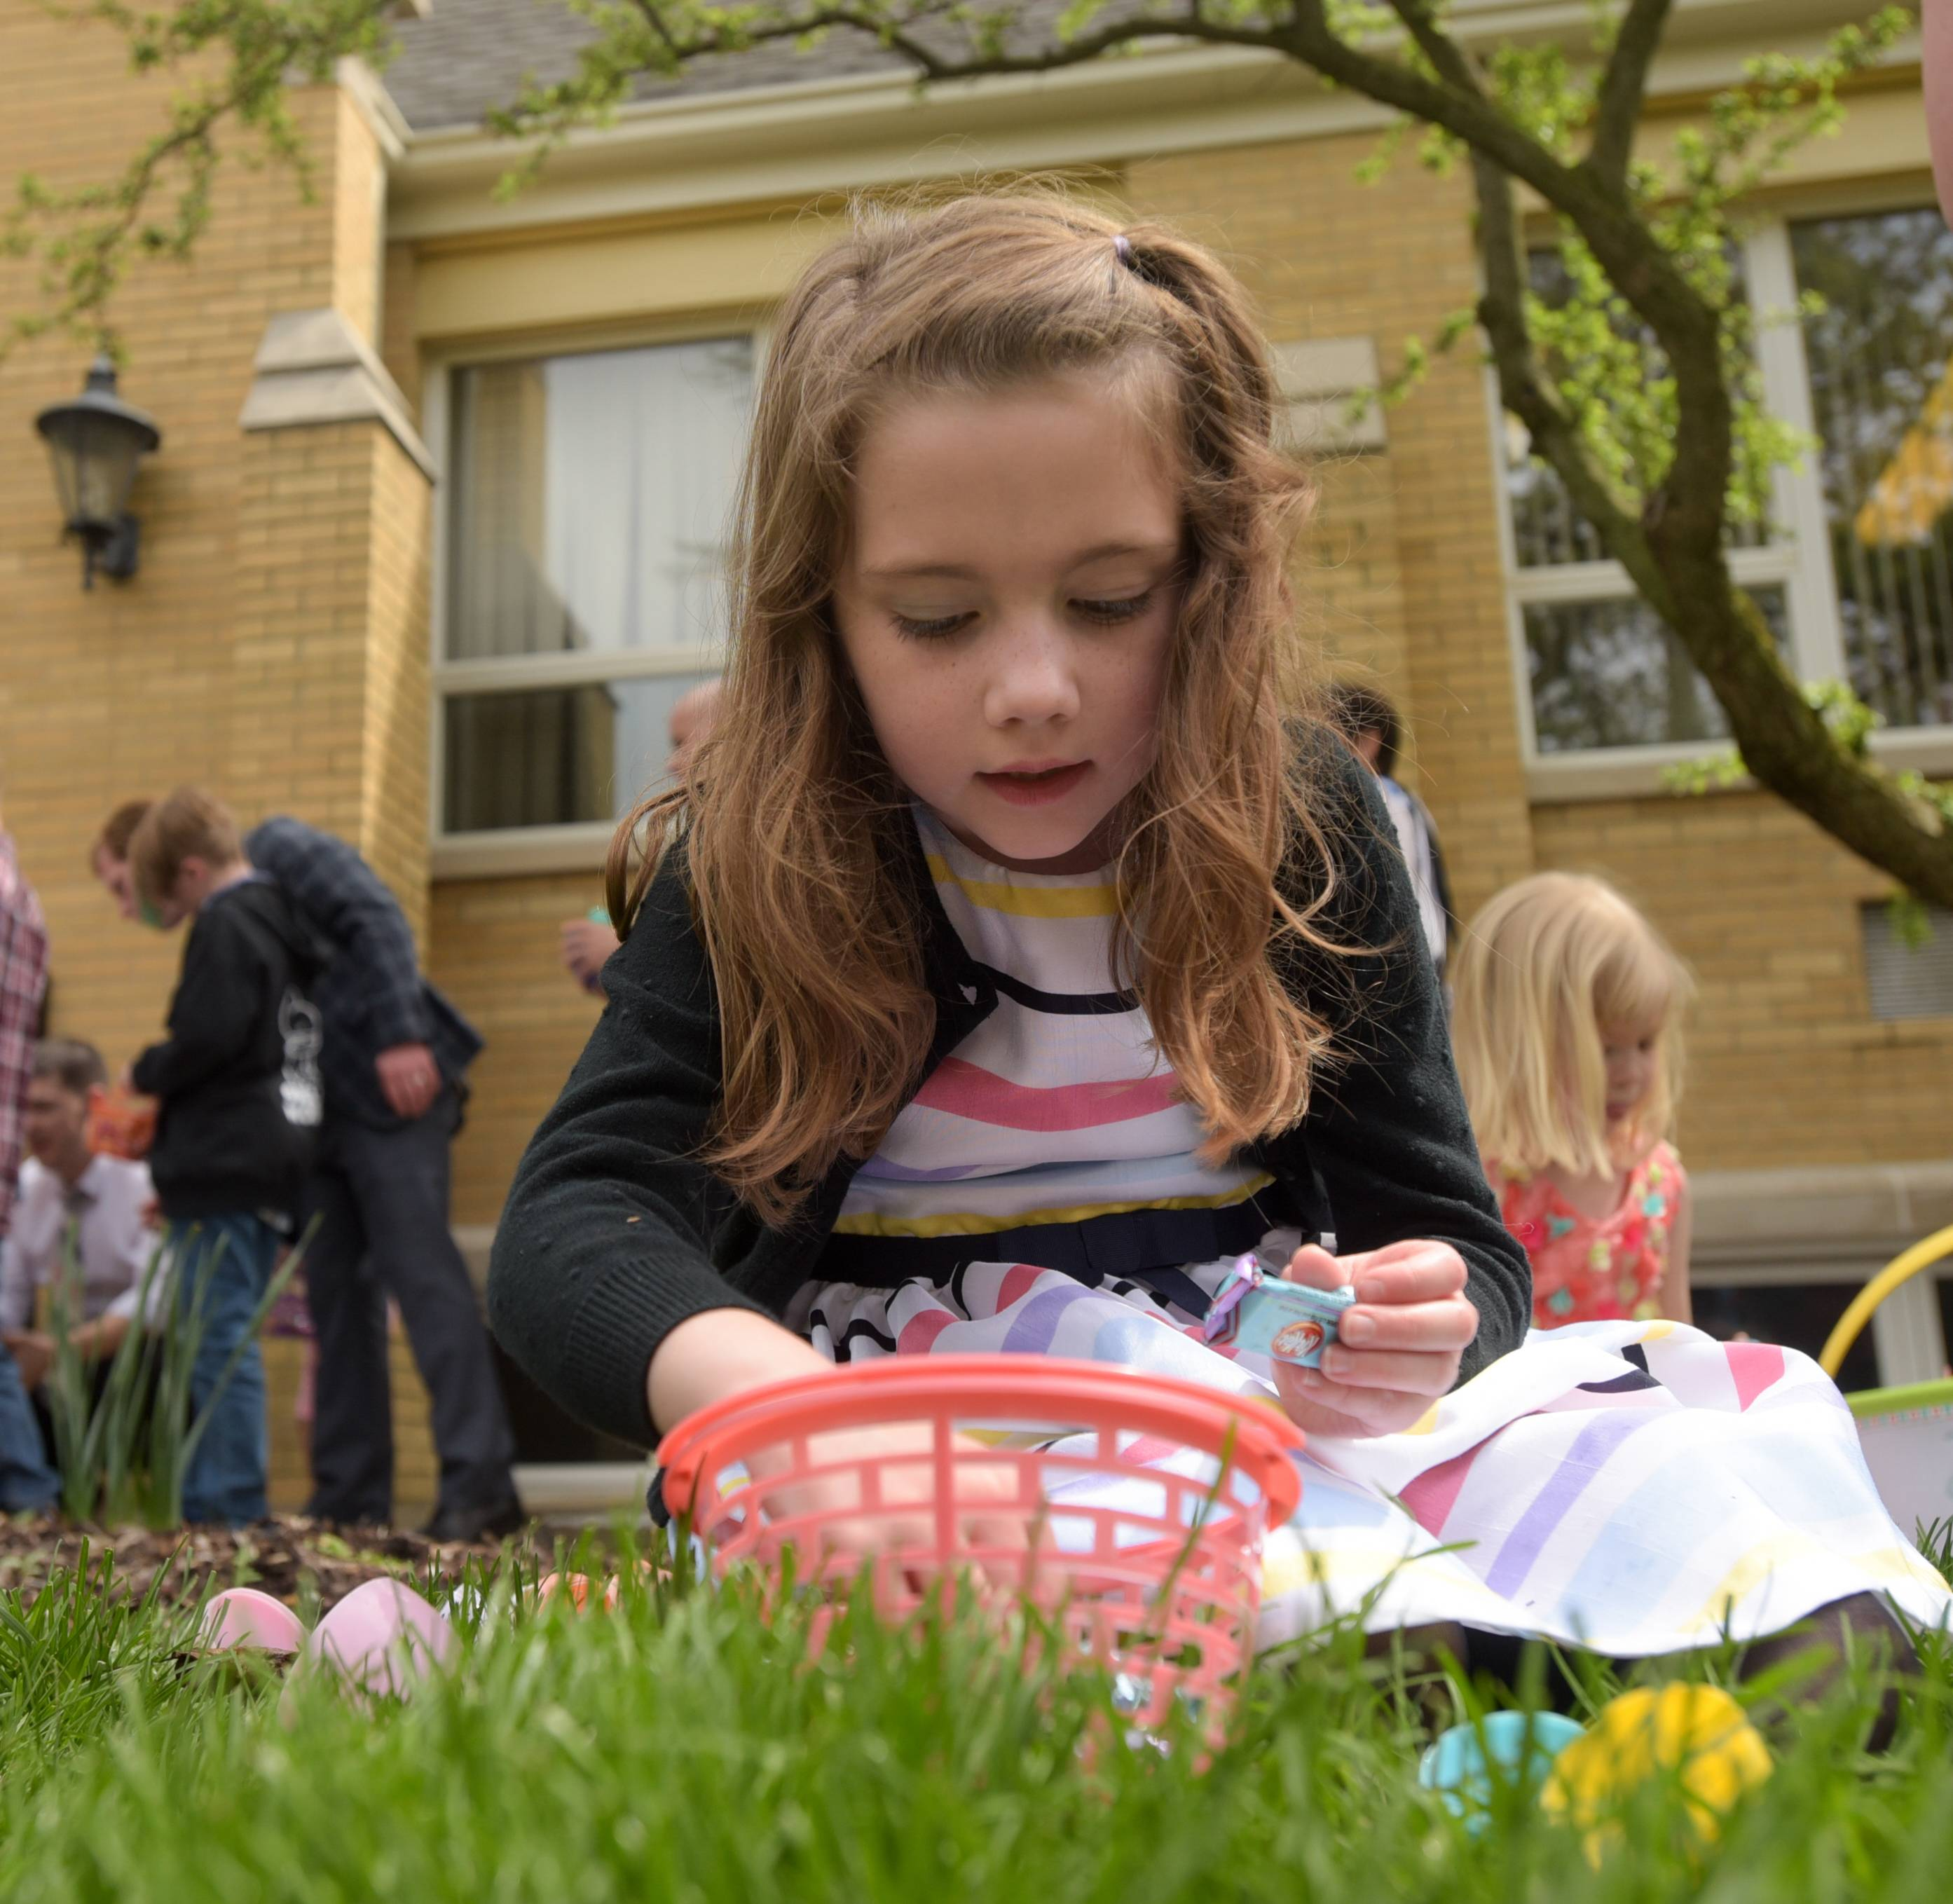 Molly Schroeder, 6 of Yorkville opens up the eggs she collected during the annual Easter Sunday egg hunt at Calvary Episcopal Church in Batavia on Sunday.